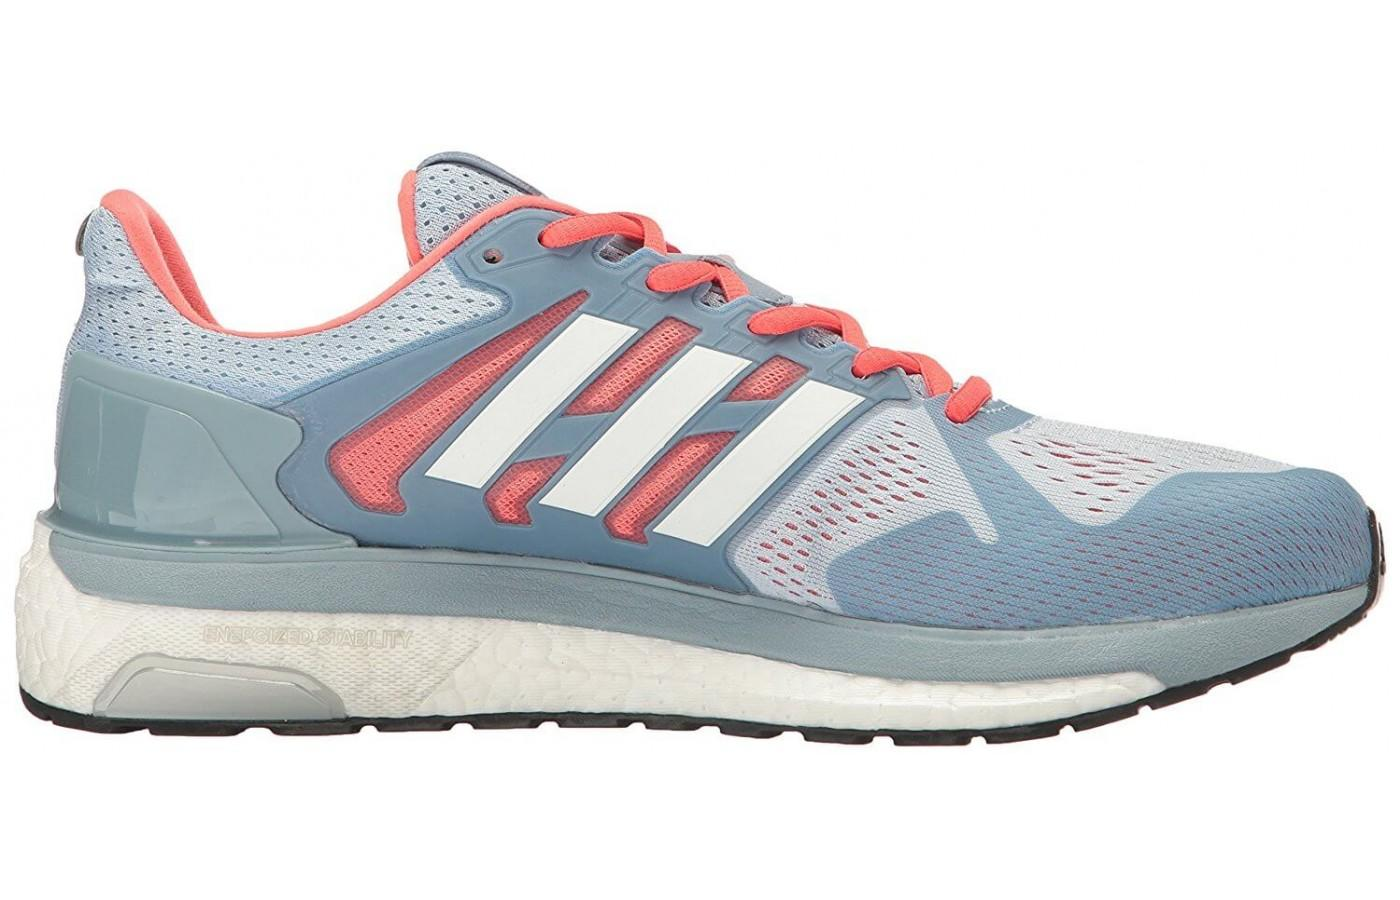 The longer medial guiderail and heel post help with pronation issues in this stability shoe.